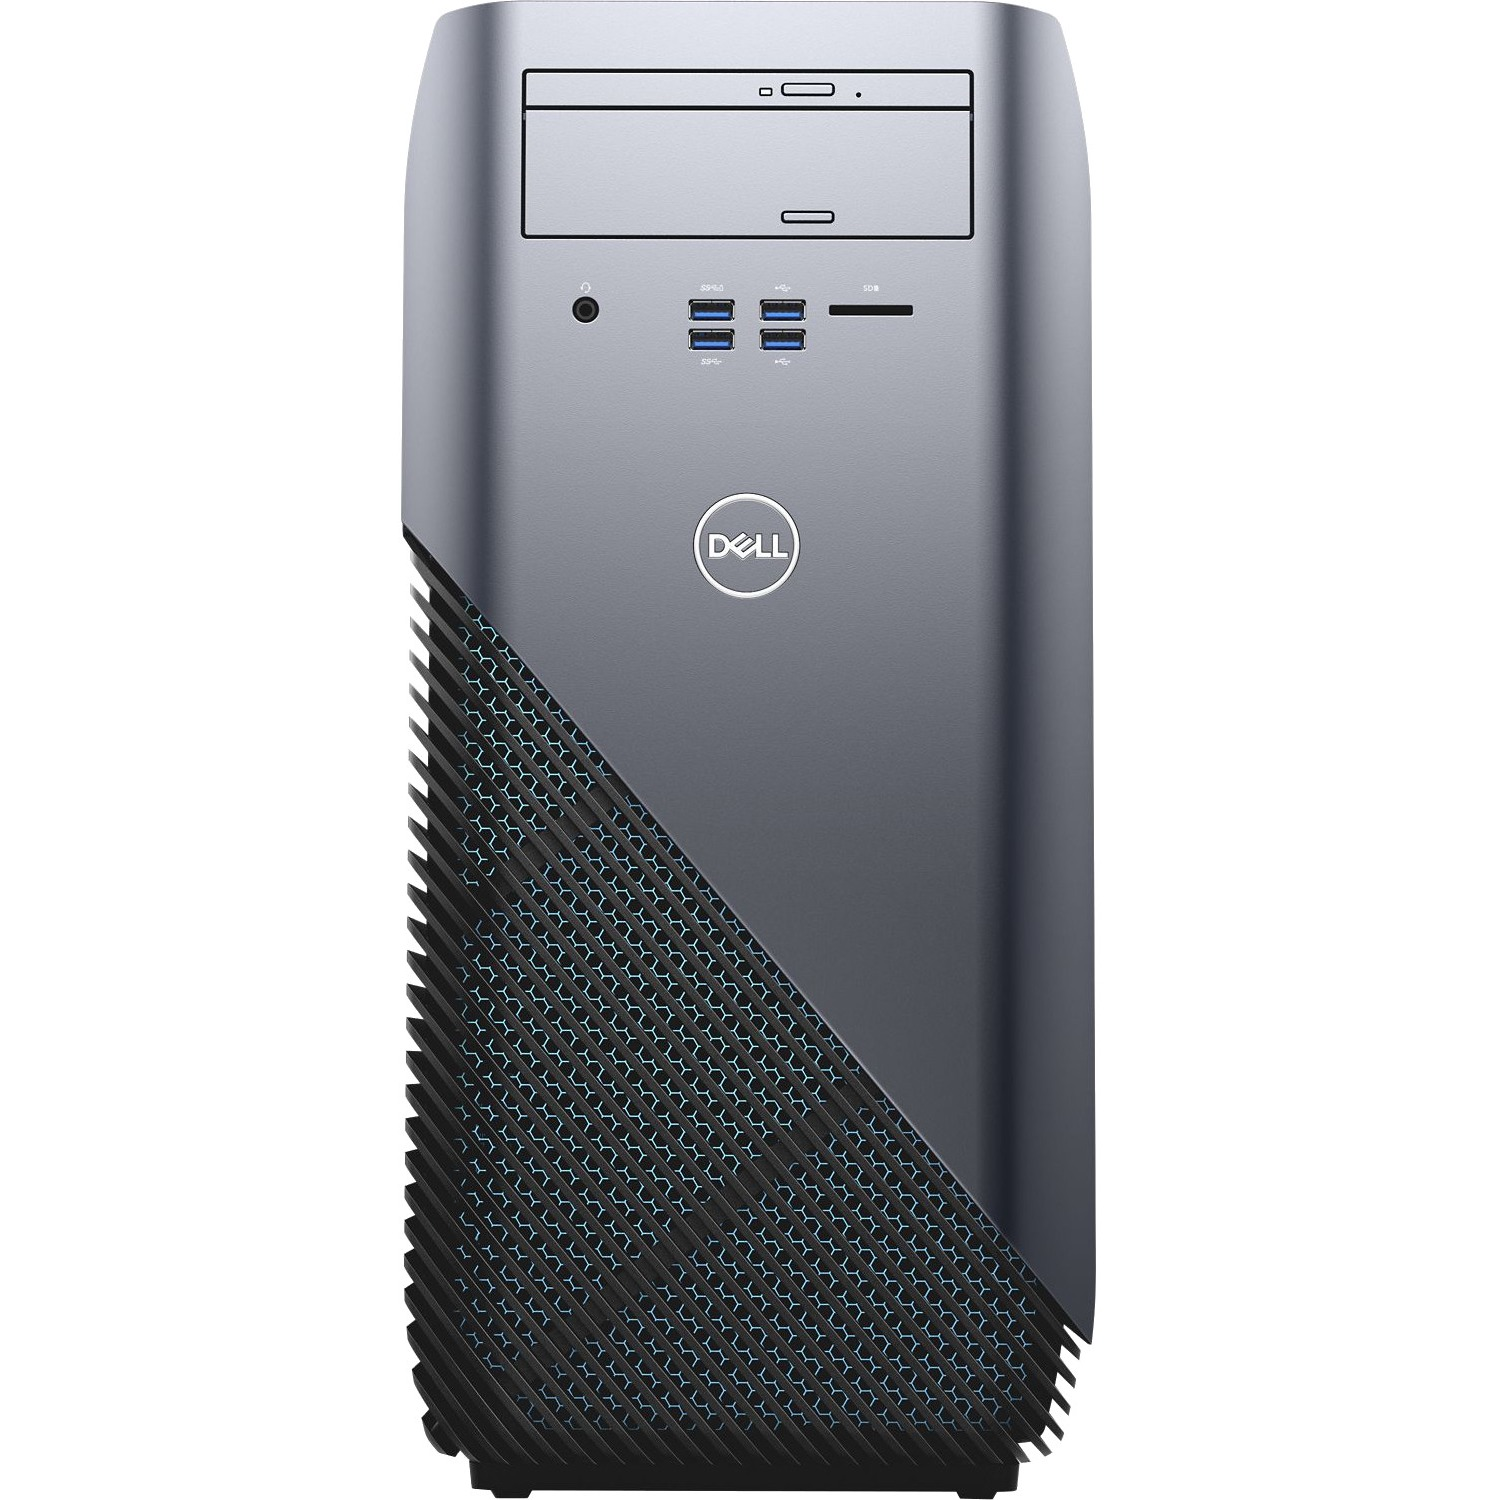 DELL STUDIO DESKTOP AMD RADEON GRAPHICS WINDOWS 10 DOWNLOAD DRIVER